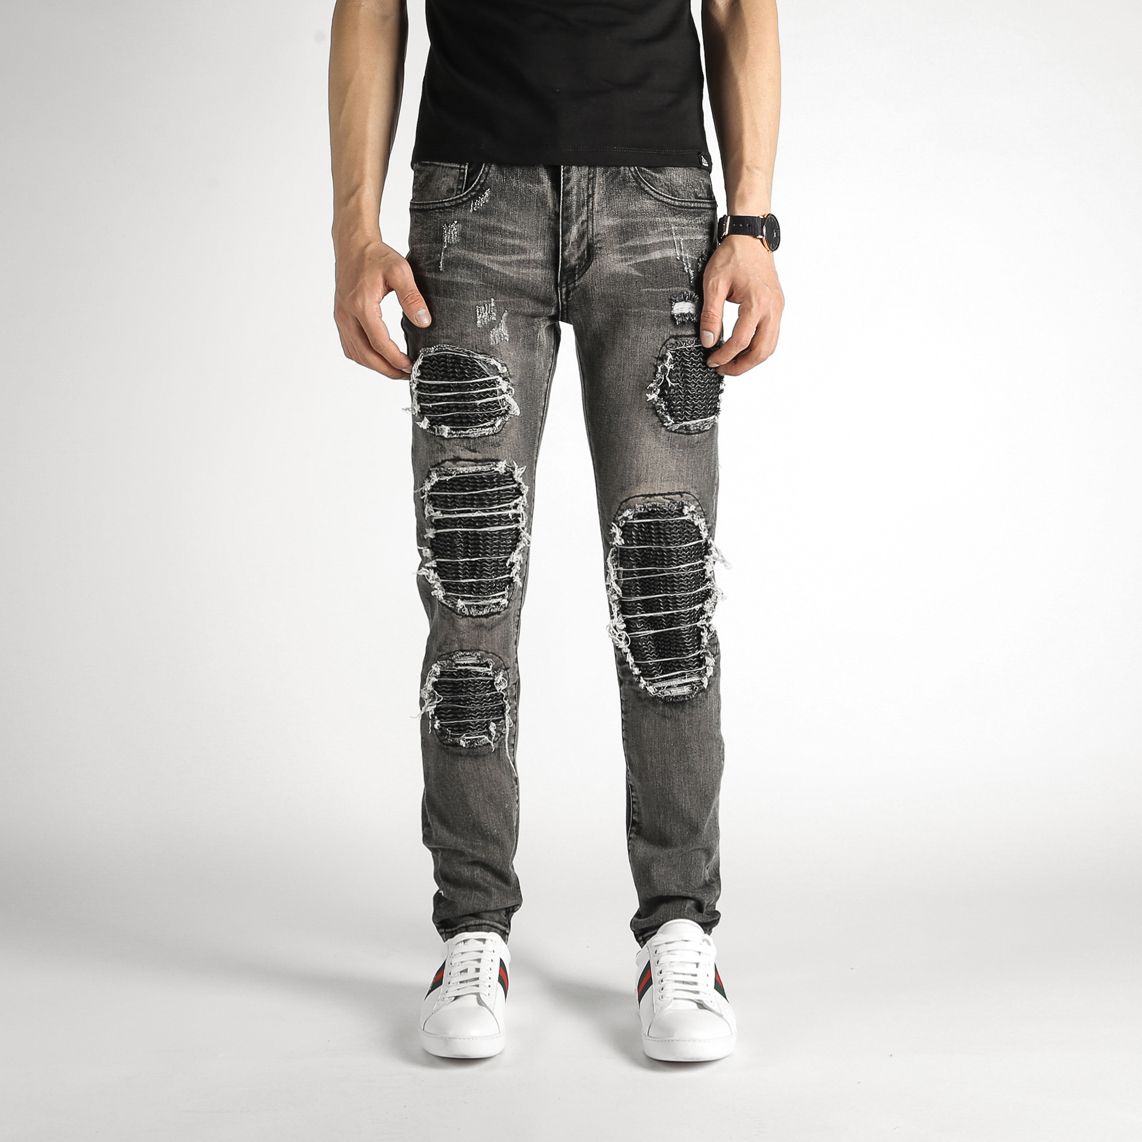 High Quality Fashion Jeans Men Distressed Slim Fit Skinny Jeans Casual Biker Jeans Men Denim Ripped Bermuda Jeans Masculina men s cowboy jeans fashion blue jeans pant men plus sizes regular slim fit denim jean pants male high quality brand jeans